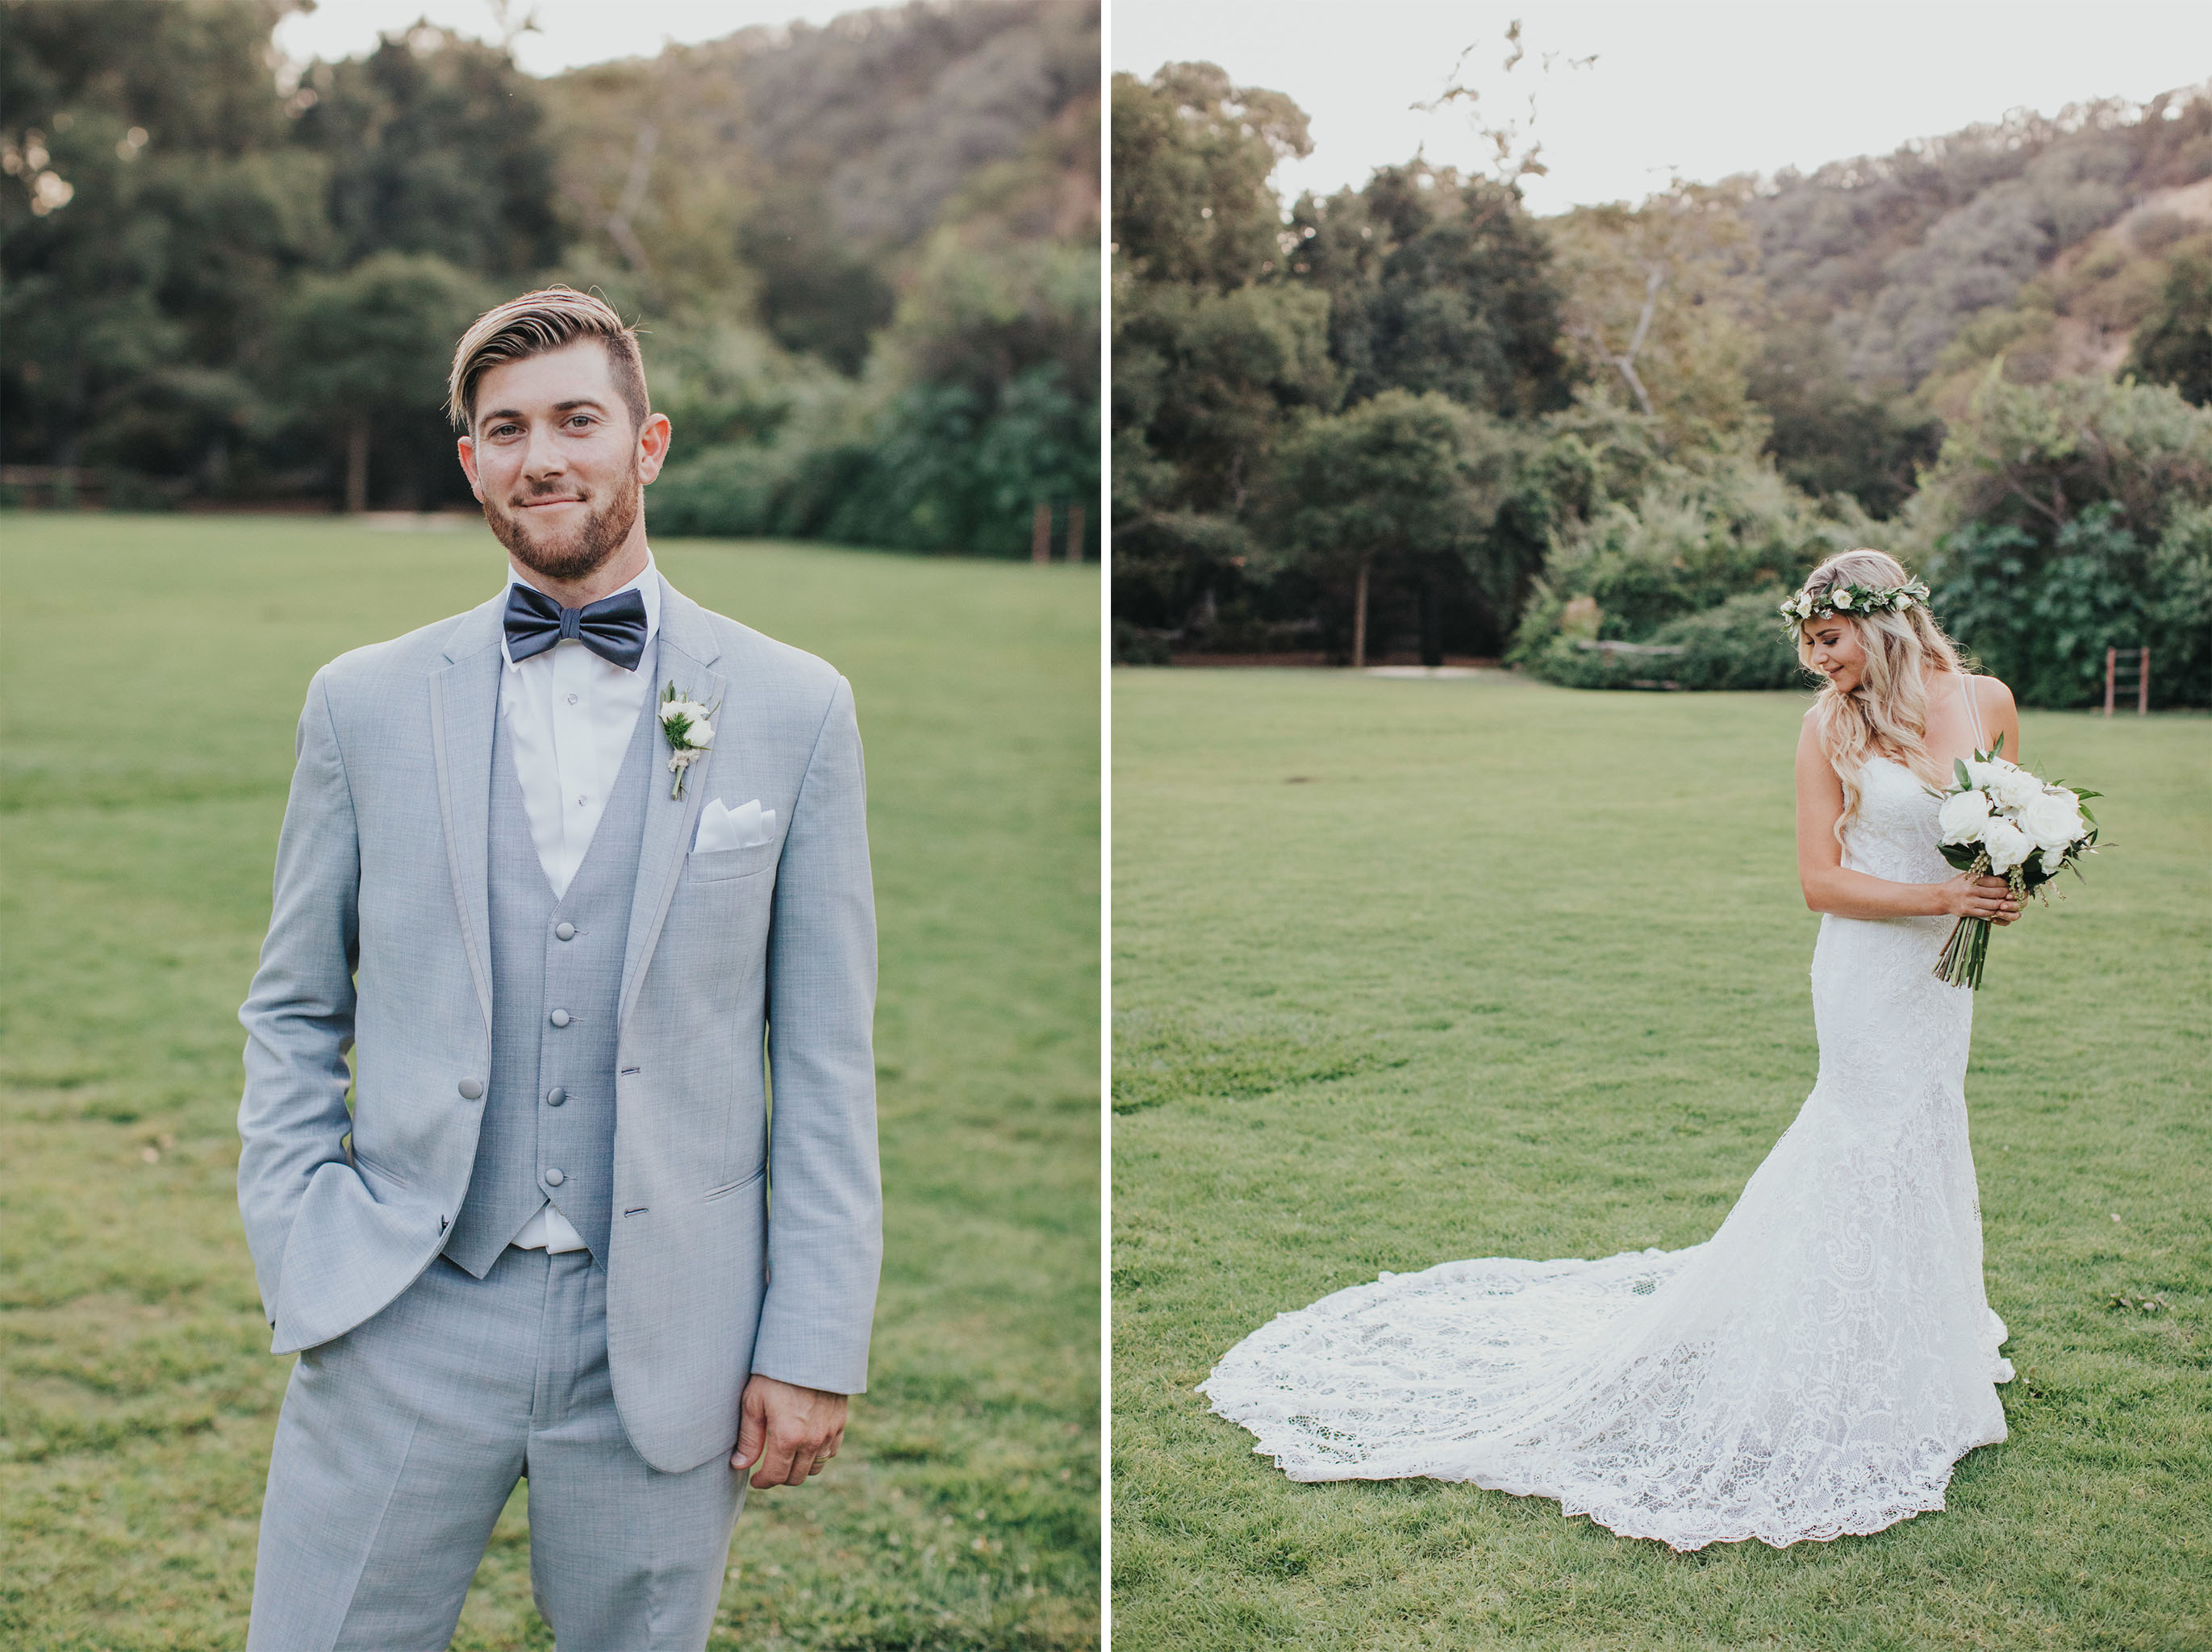 Bride & Groom Solo Shots | Calamigos Ranch